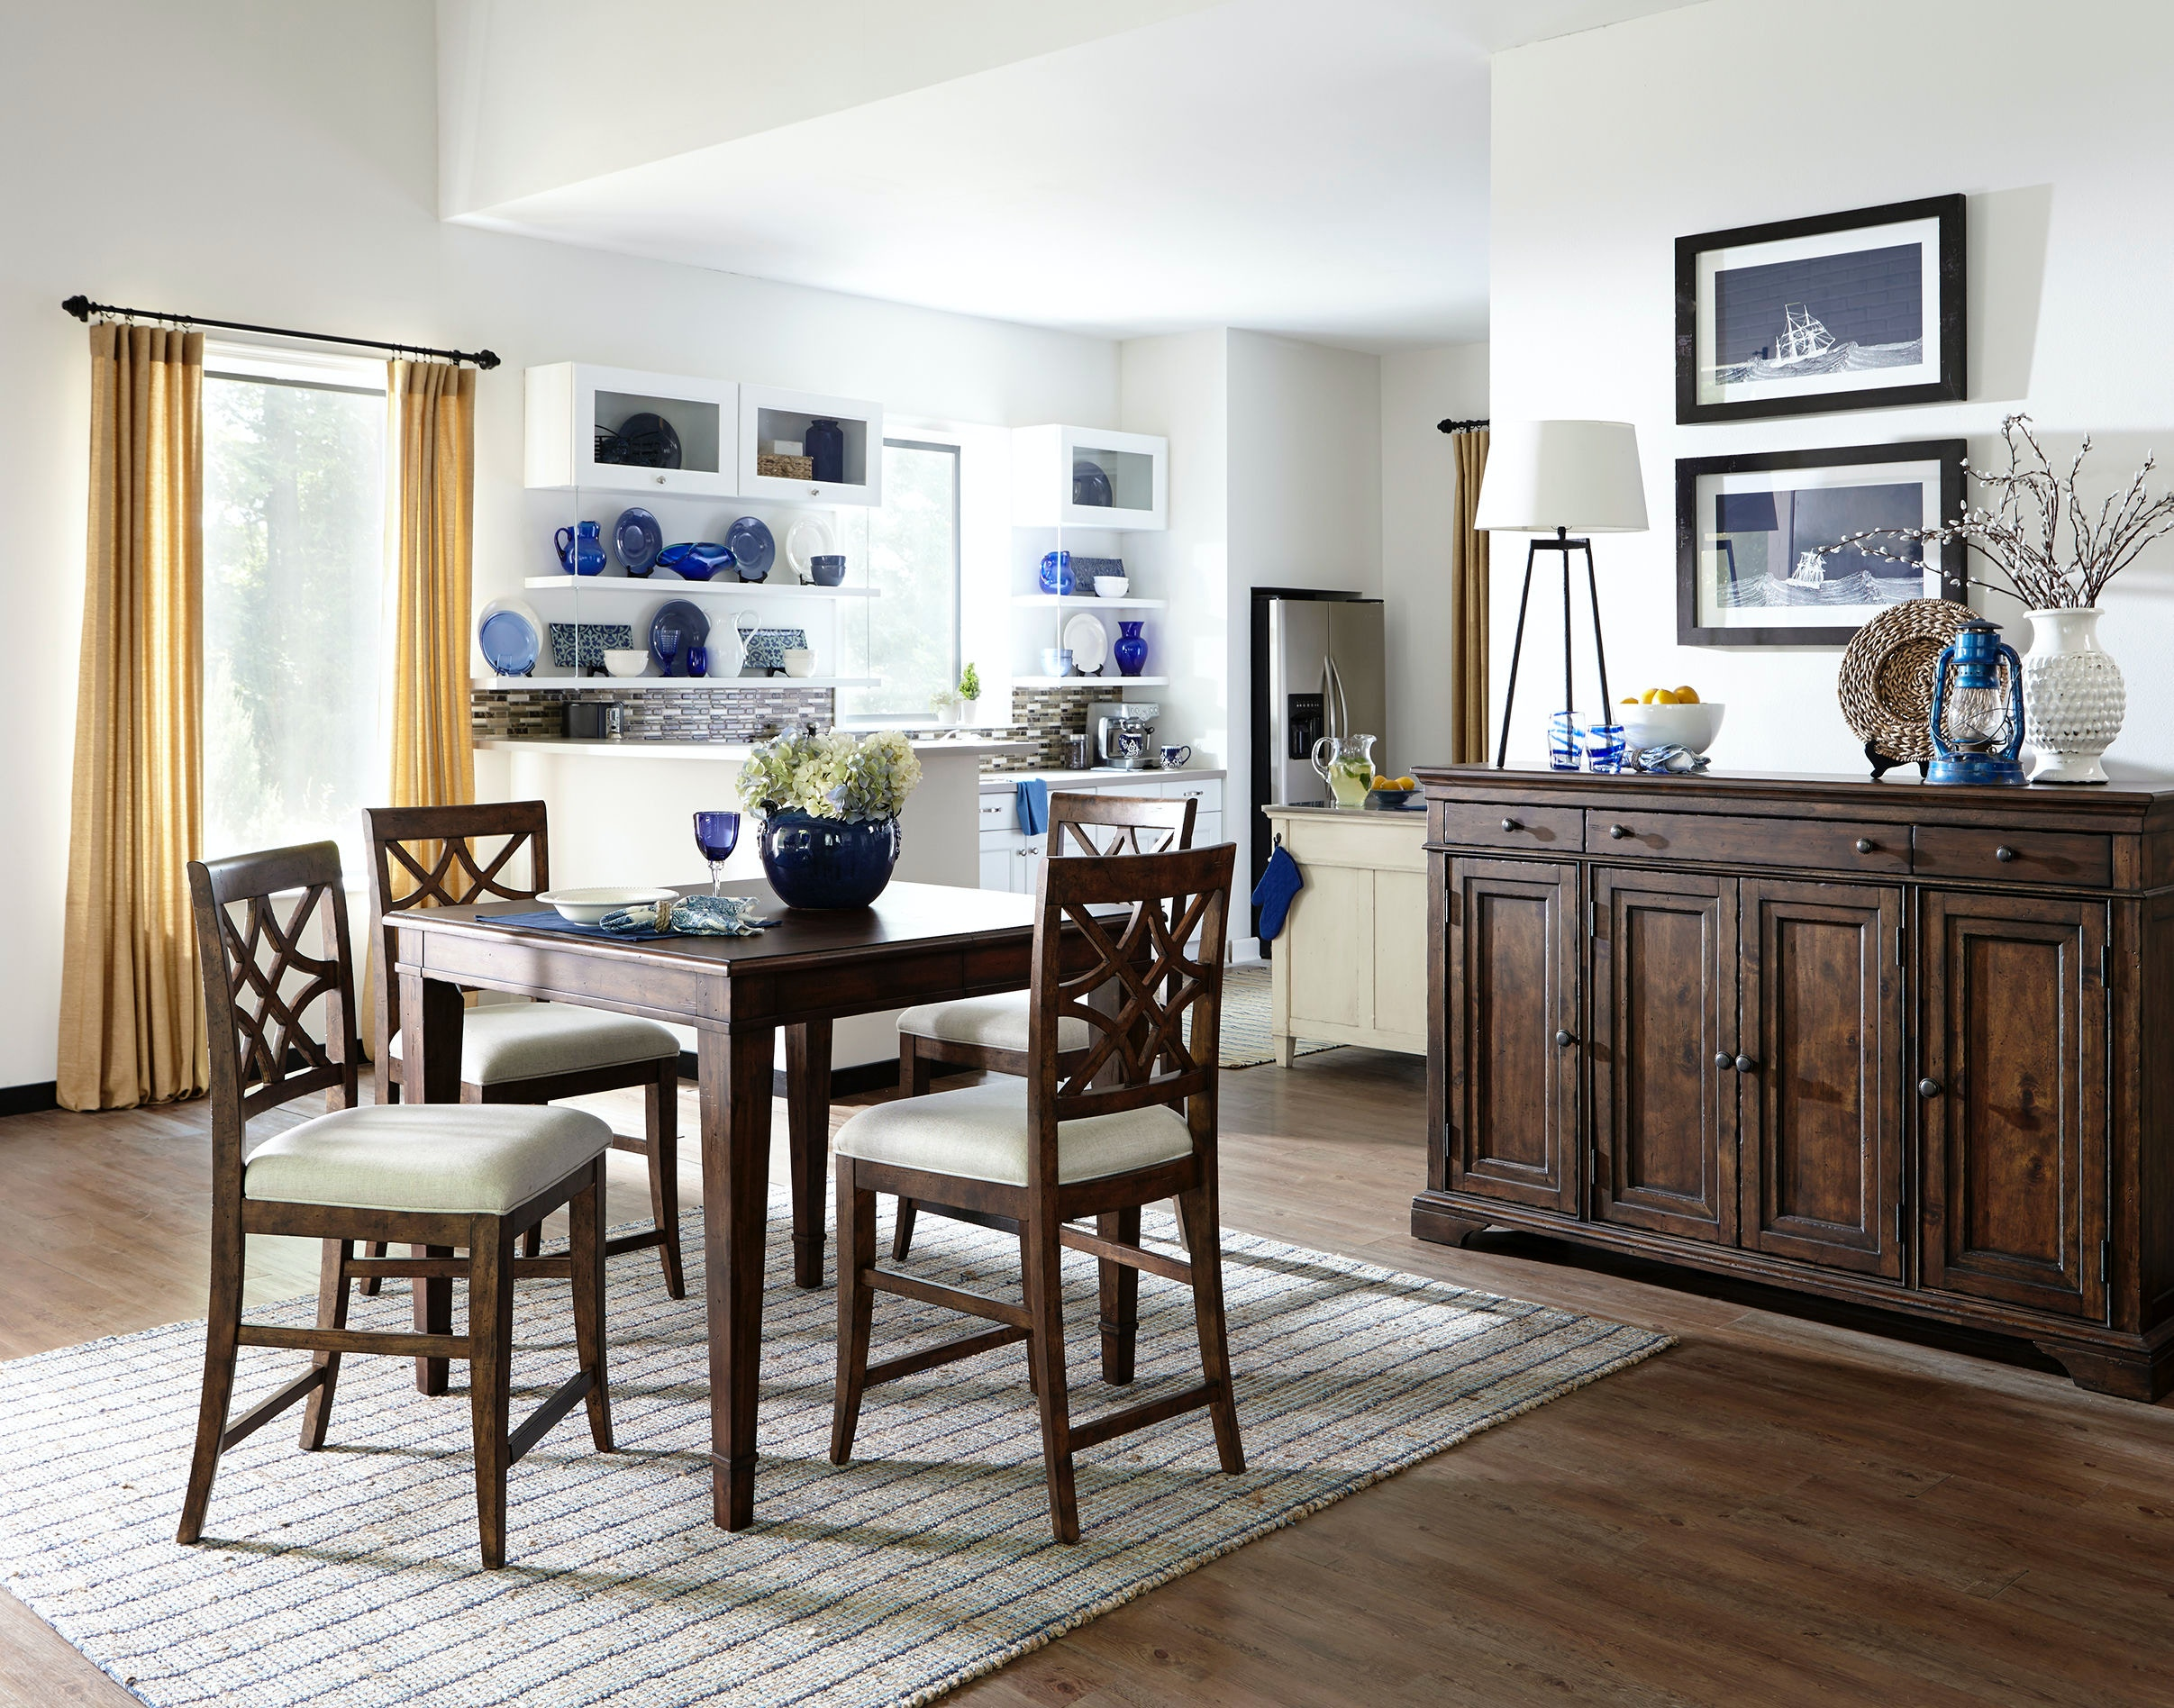 ... Klaussner International Trisha Yearwood 920 Dining Room ...